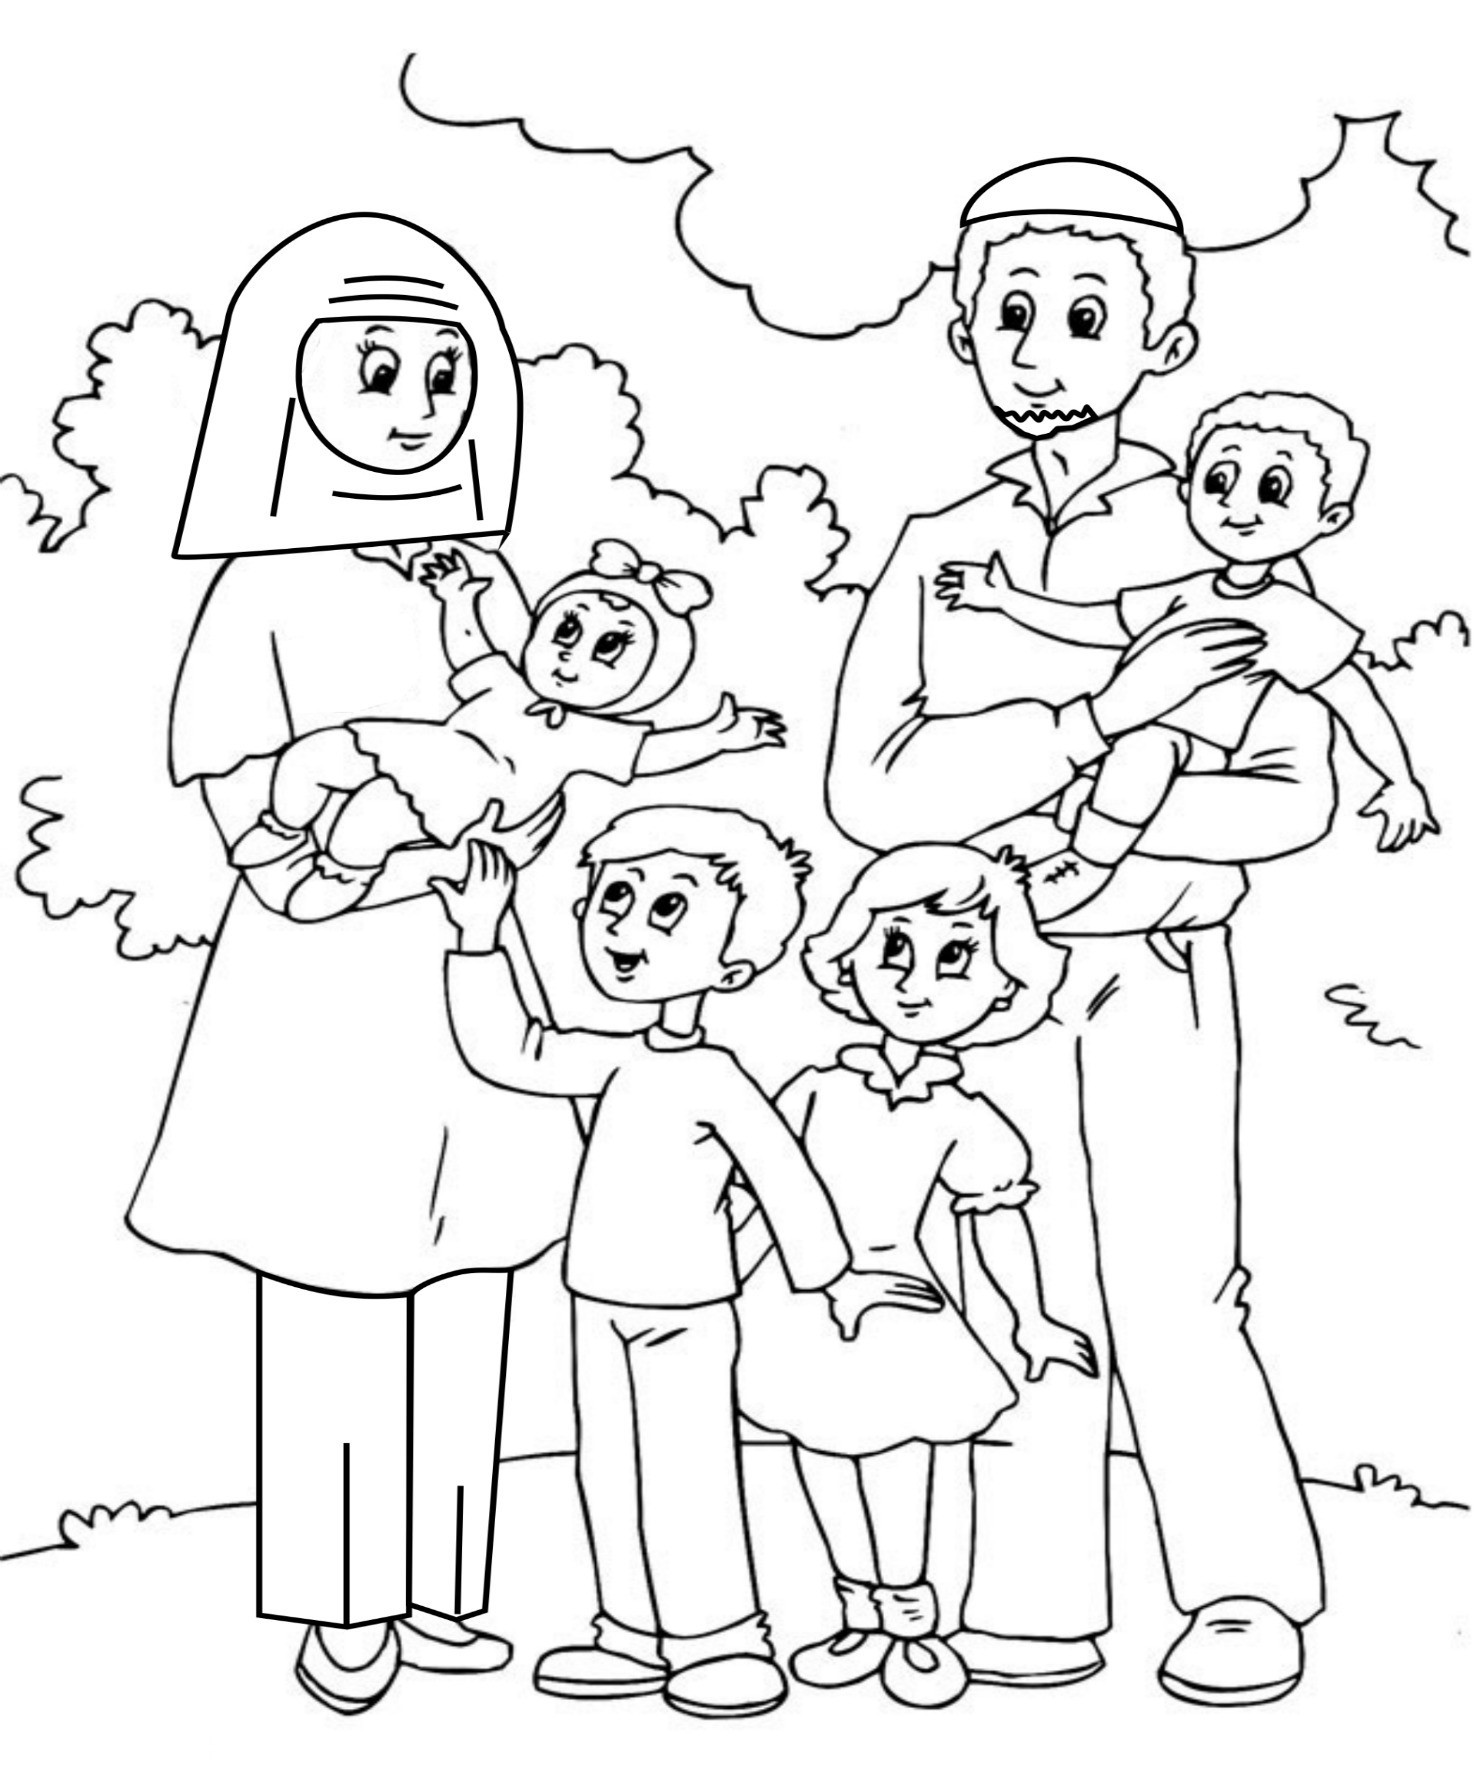 family picture coloring sheet get this kids39 printable family coloring pages x4lk2 coloring sheet family picture